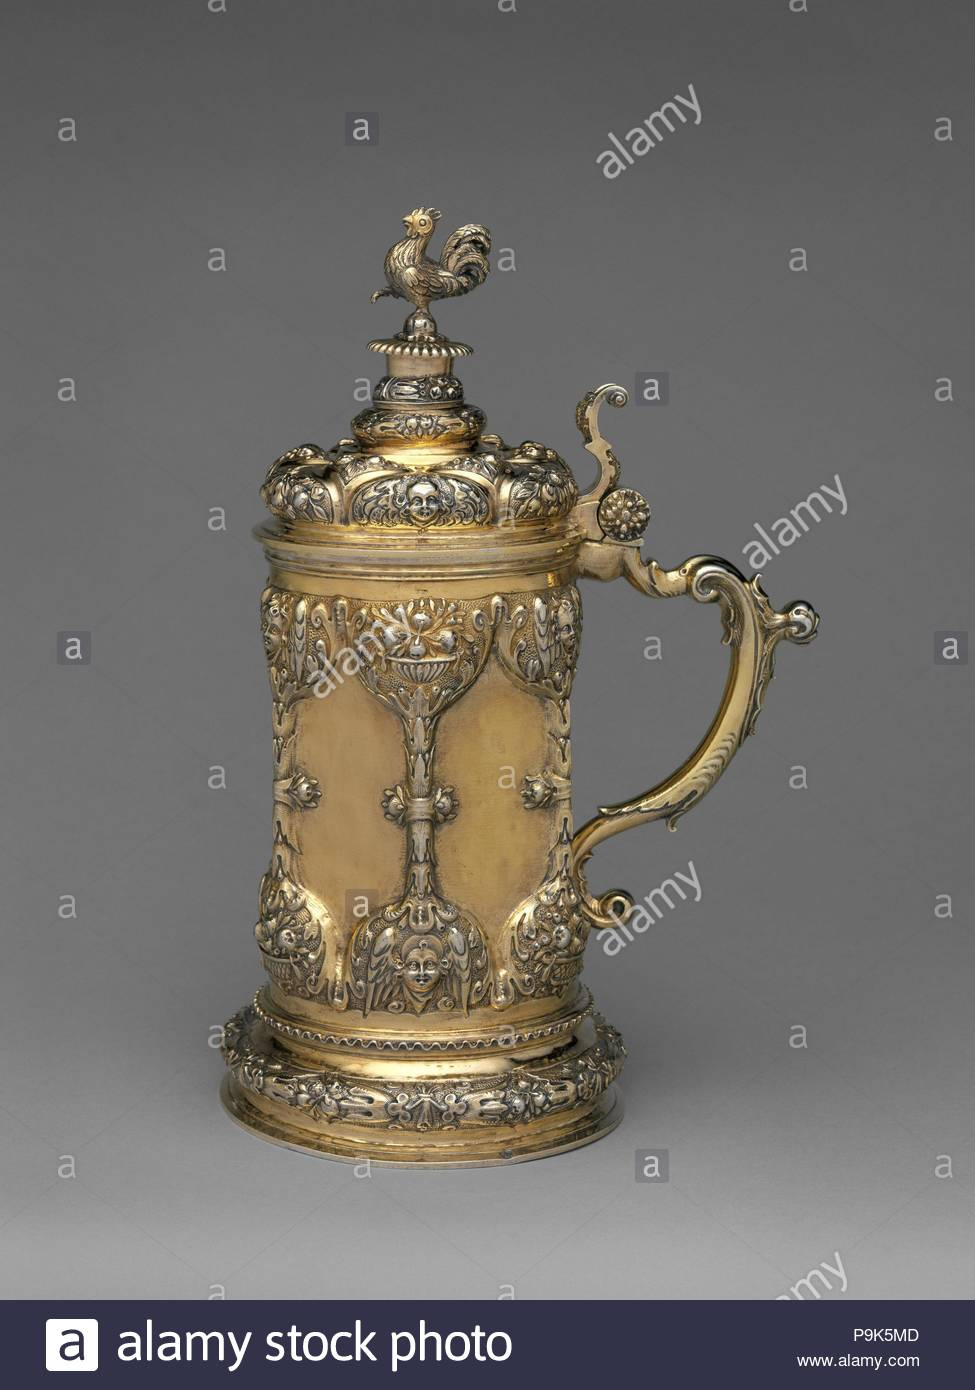 Tankard, late 17th century, Hungarian, Brassó, Gilded silver, Overall: 11 3/4 x 5 1/4 in. (29.8 x 13.3 cm), Metalwork-Silver, It is unclear if this tankard was made for private use or if it was always intended to serve as a communion vessel, which was its function after it arrived in England. The overall ornamental symbolism is connected to vanity. - Stock Image